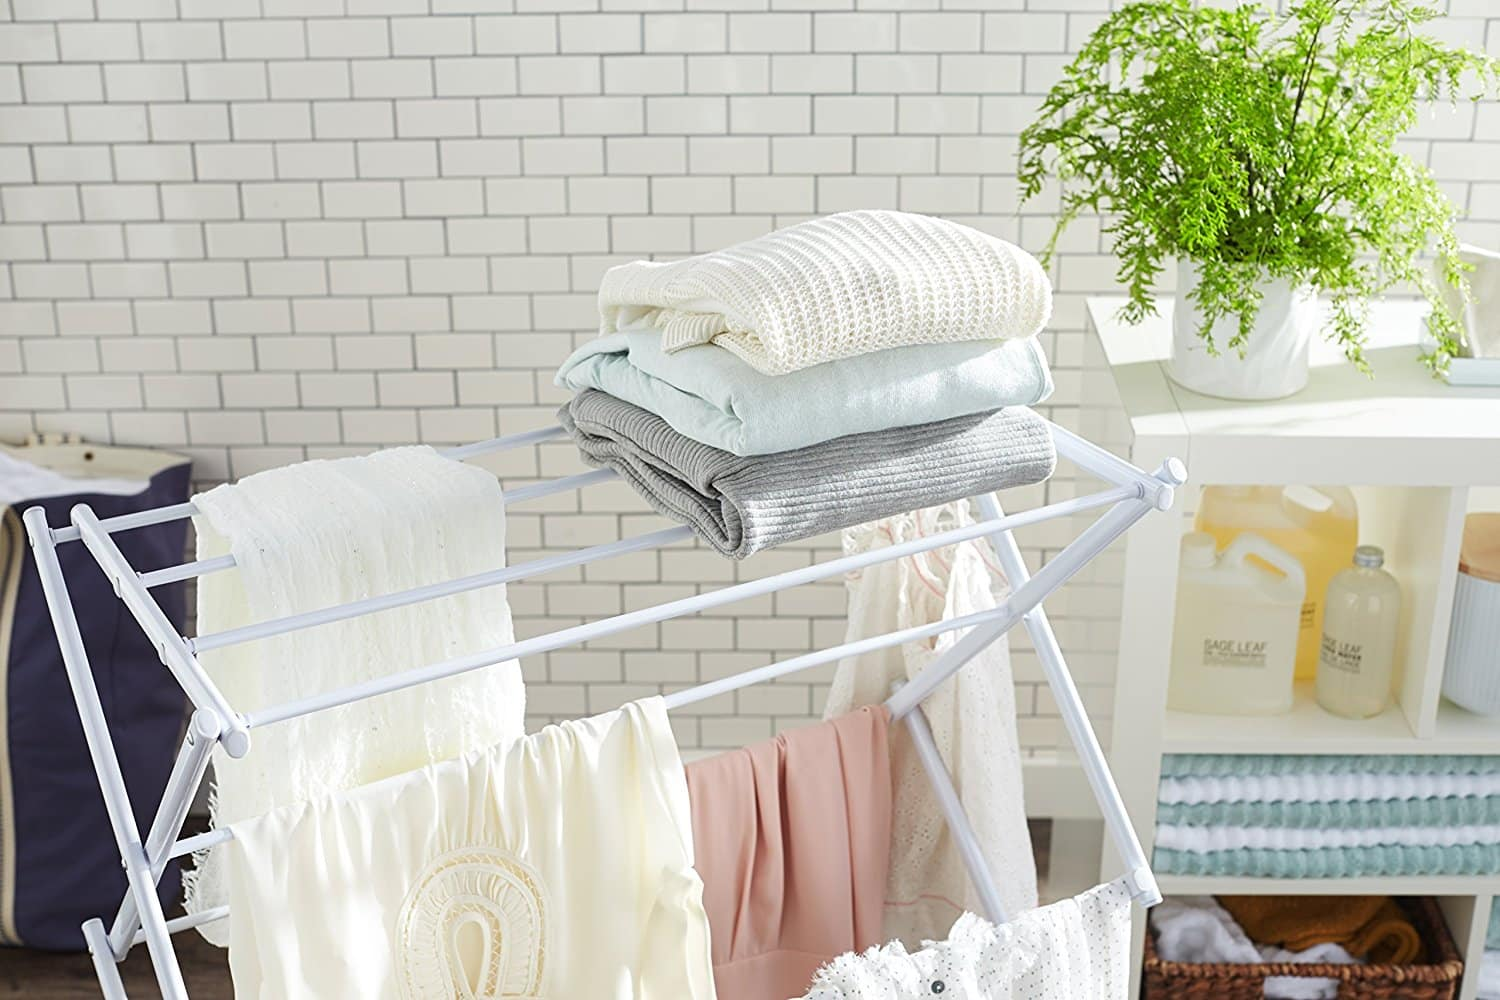 Top 10 Best Clothes Drying Racks in 2019 - Best Reviews Guide